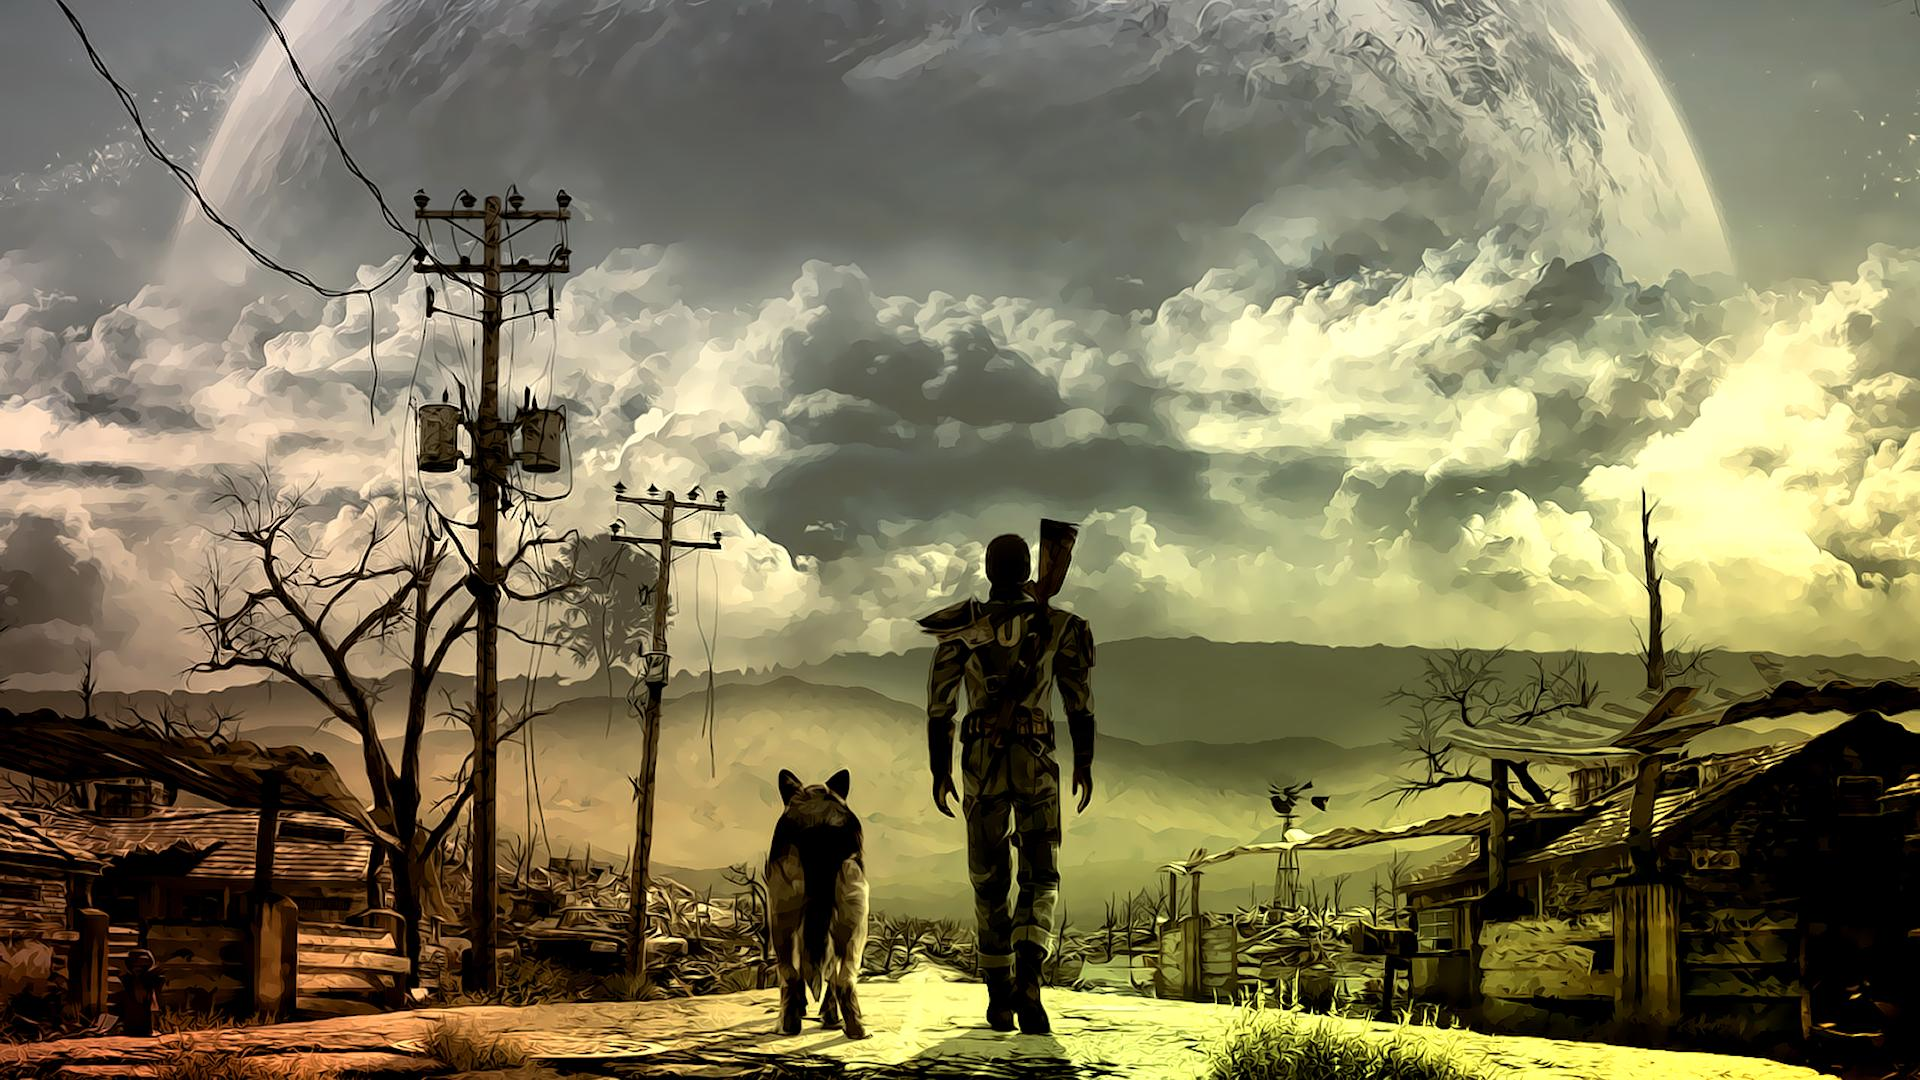 fallout-edited-screenshot.jpg